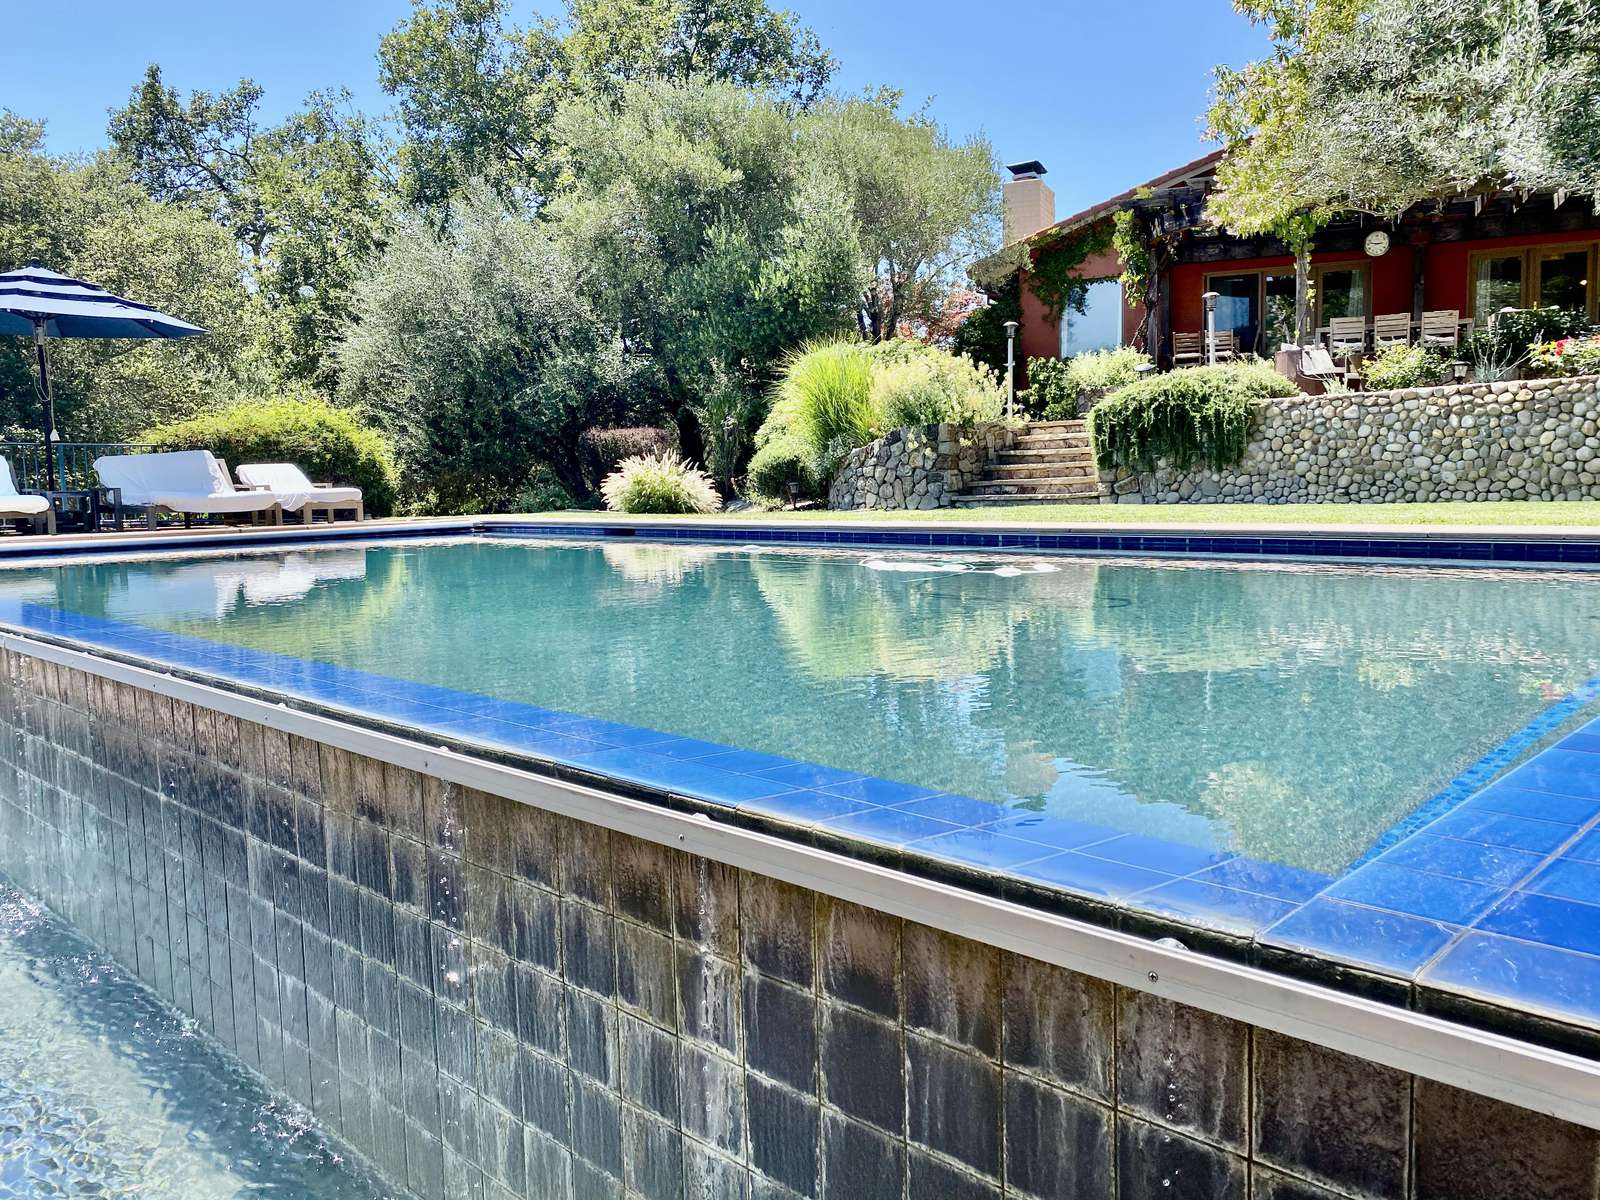 Infinity edge keep the pool cool during hot summer days